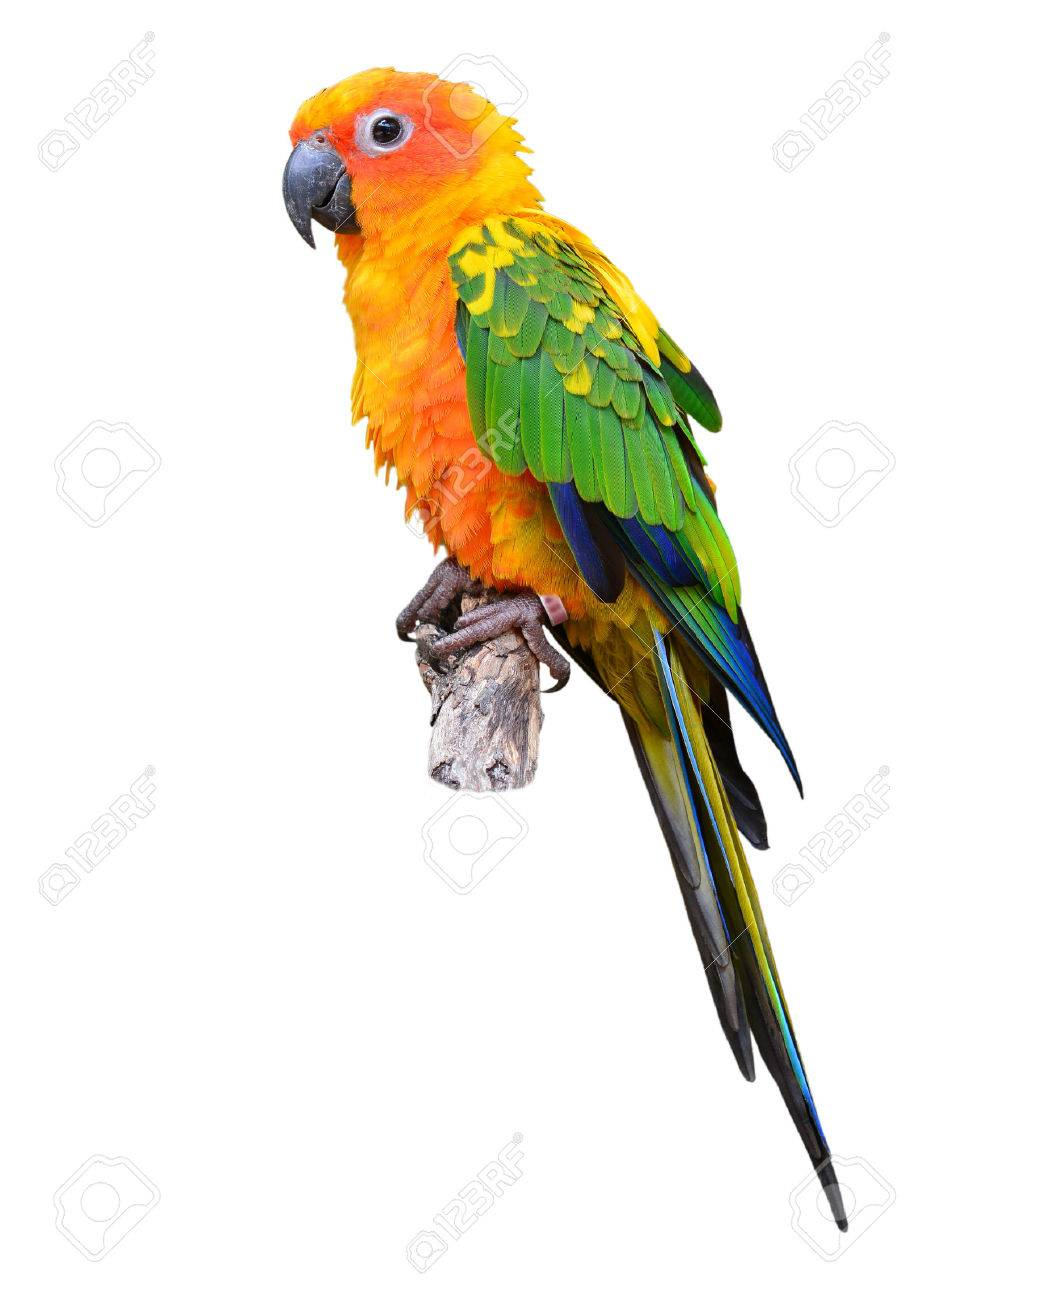 Sun Conure Parrot standing on the stump isolated on white background - 31119704